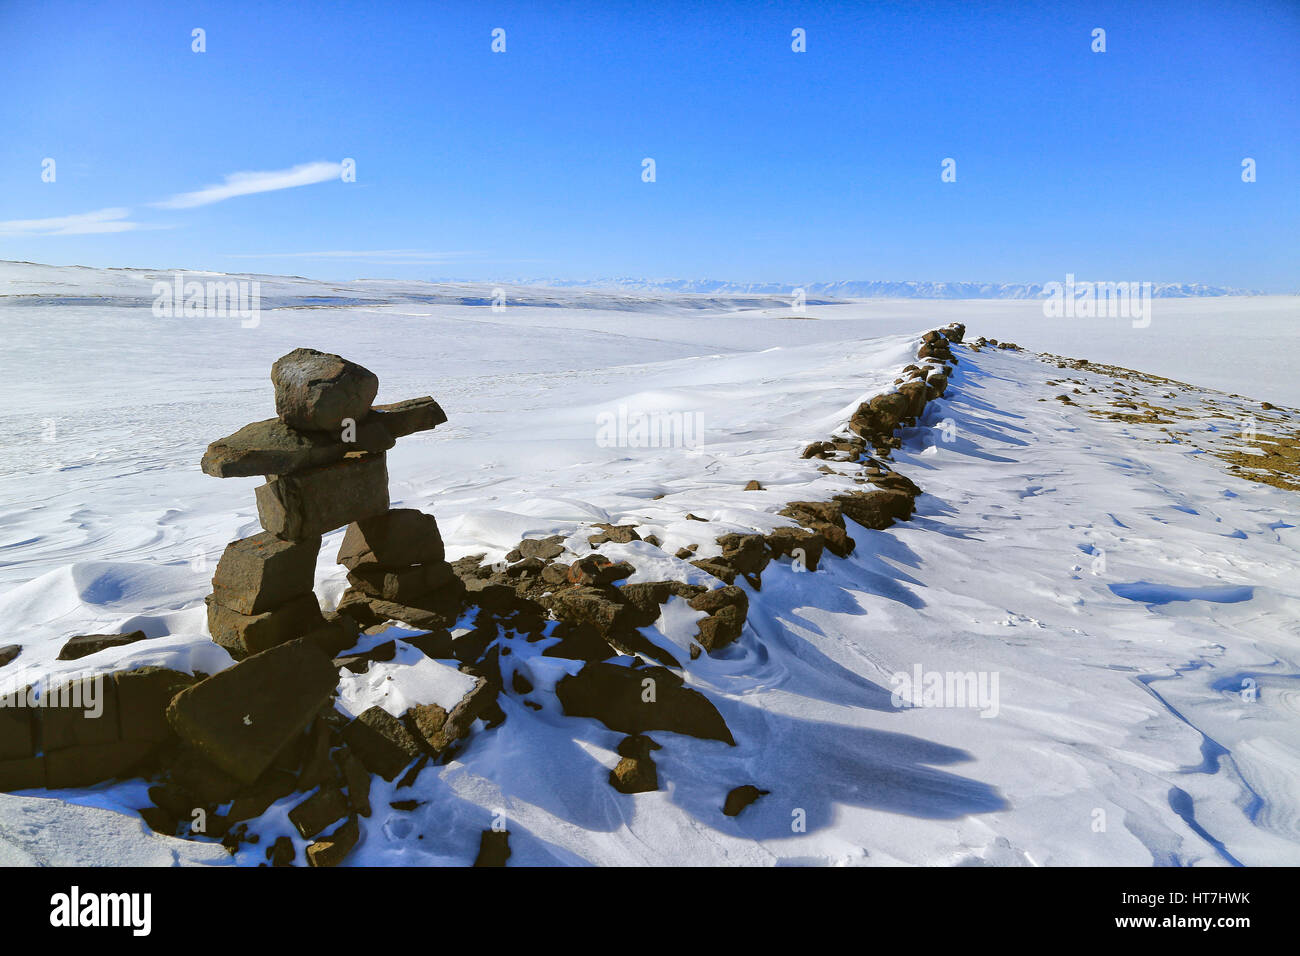 A Rock Cairn Marker Used As A Visual Waypoint By Local Inuit Hunters And By Snowmobile Expeditions - Stock Image